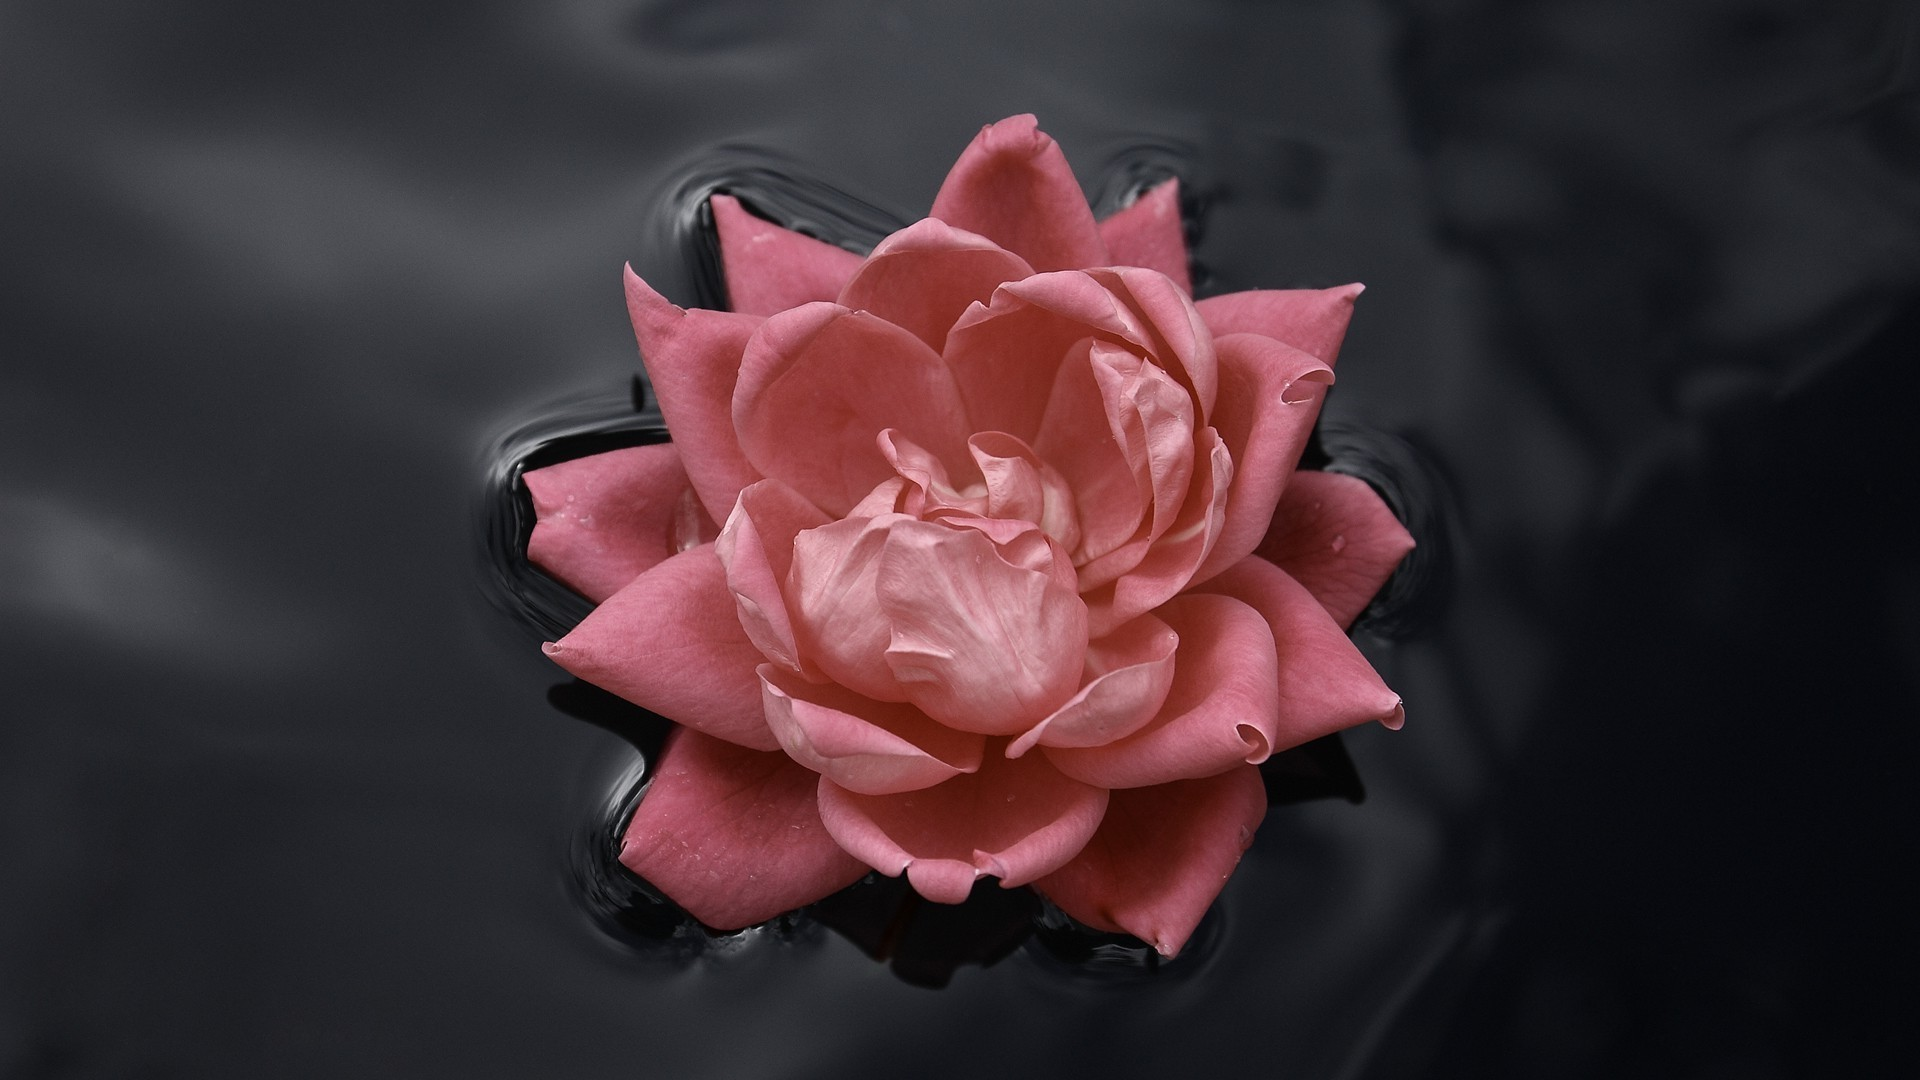 Pink black backgrounds 60 pictures - Pink rose black background wallpaper ...